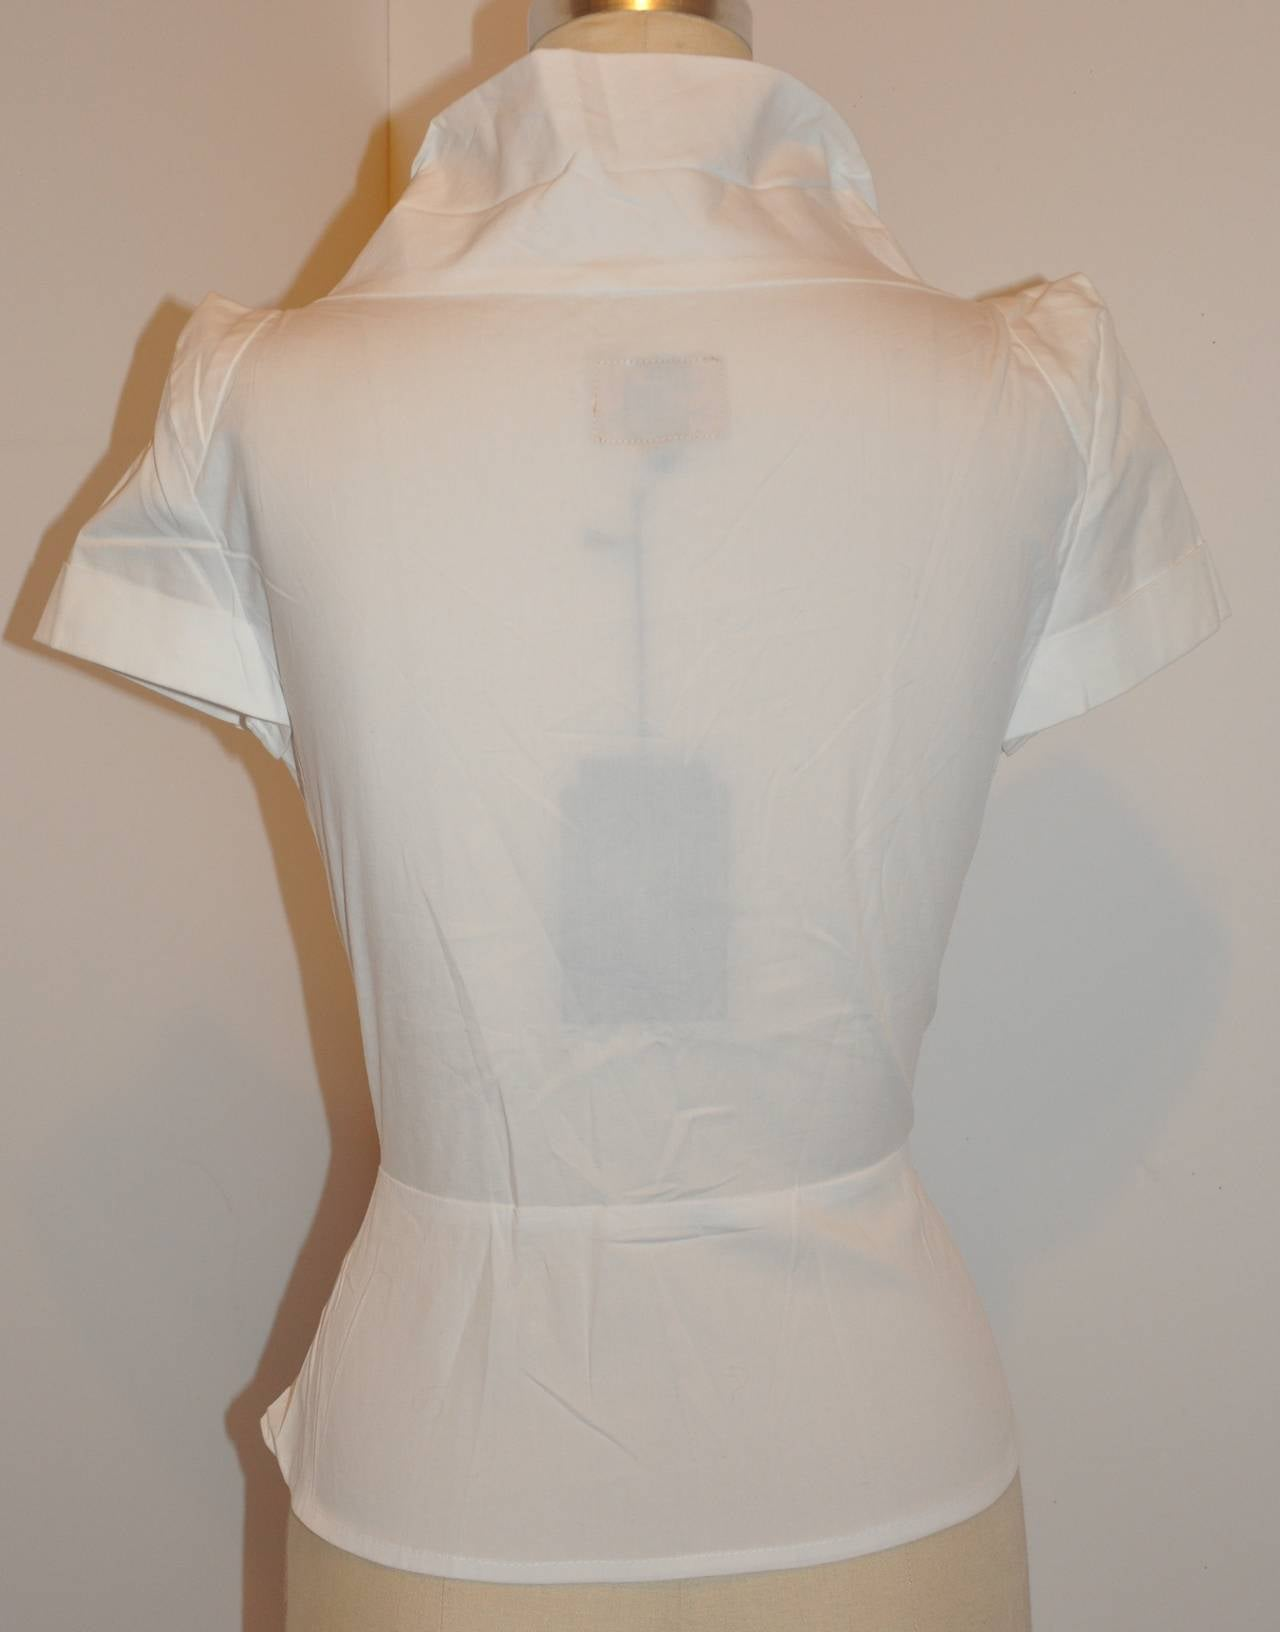 Vivienne Westwood White Deconstructed Top with Tags 5